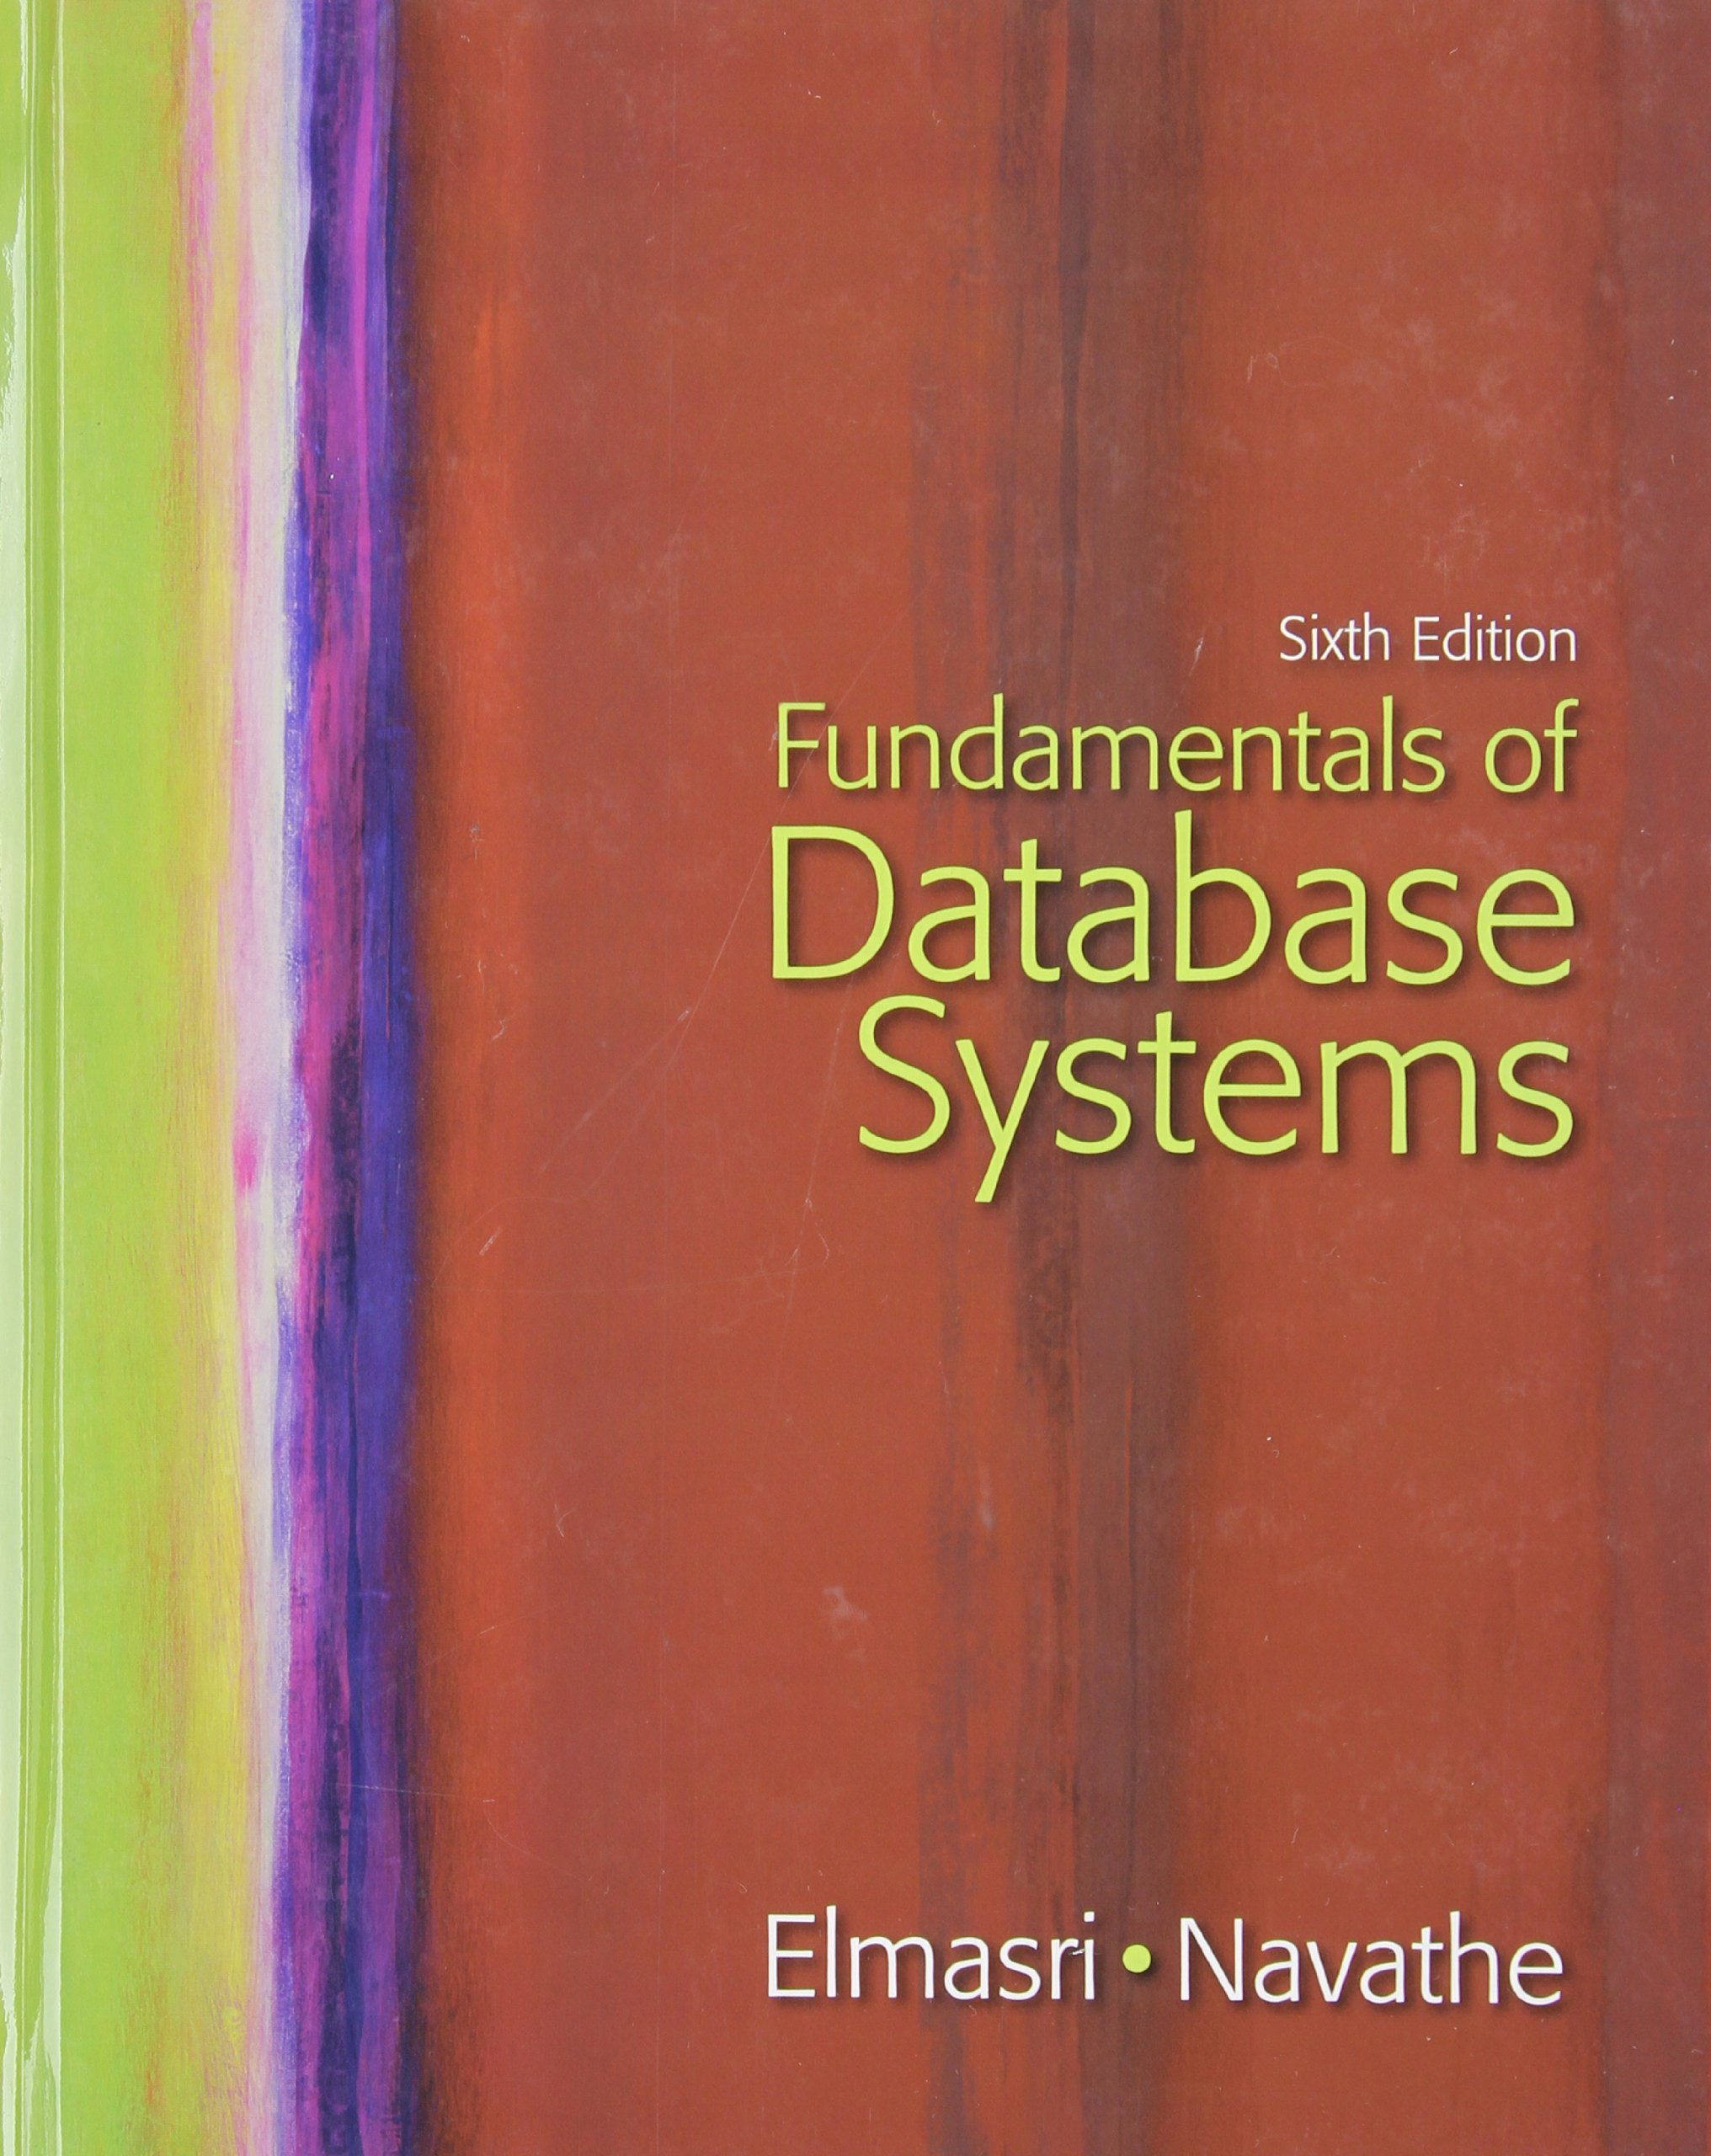 Image result for fundamentals of database systems